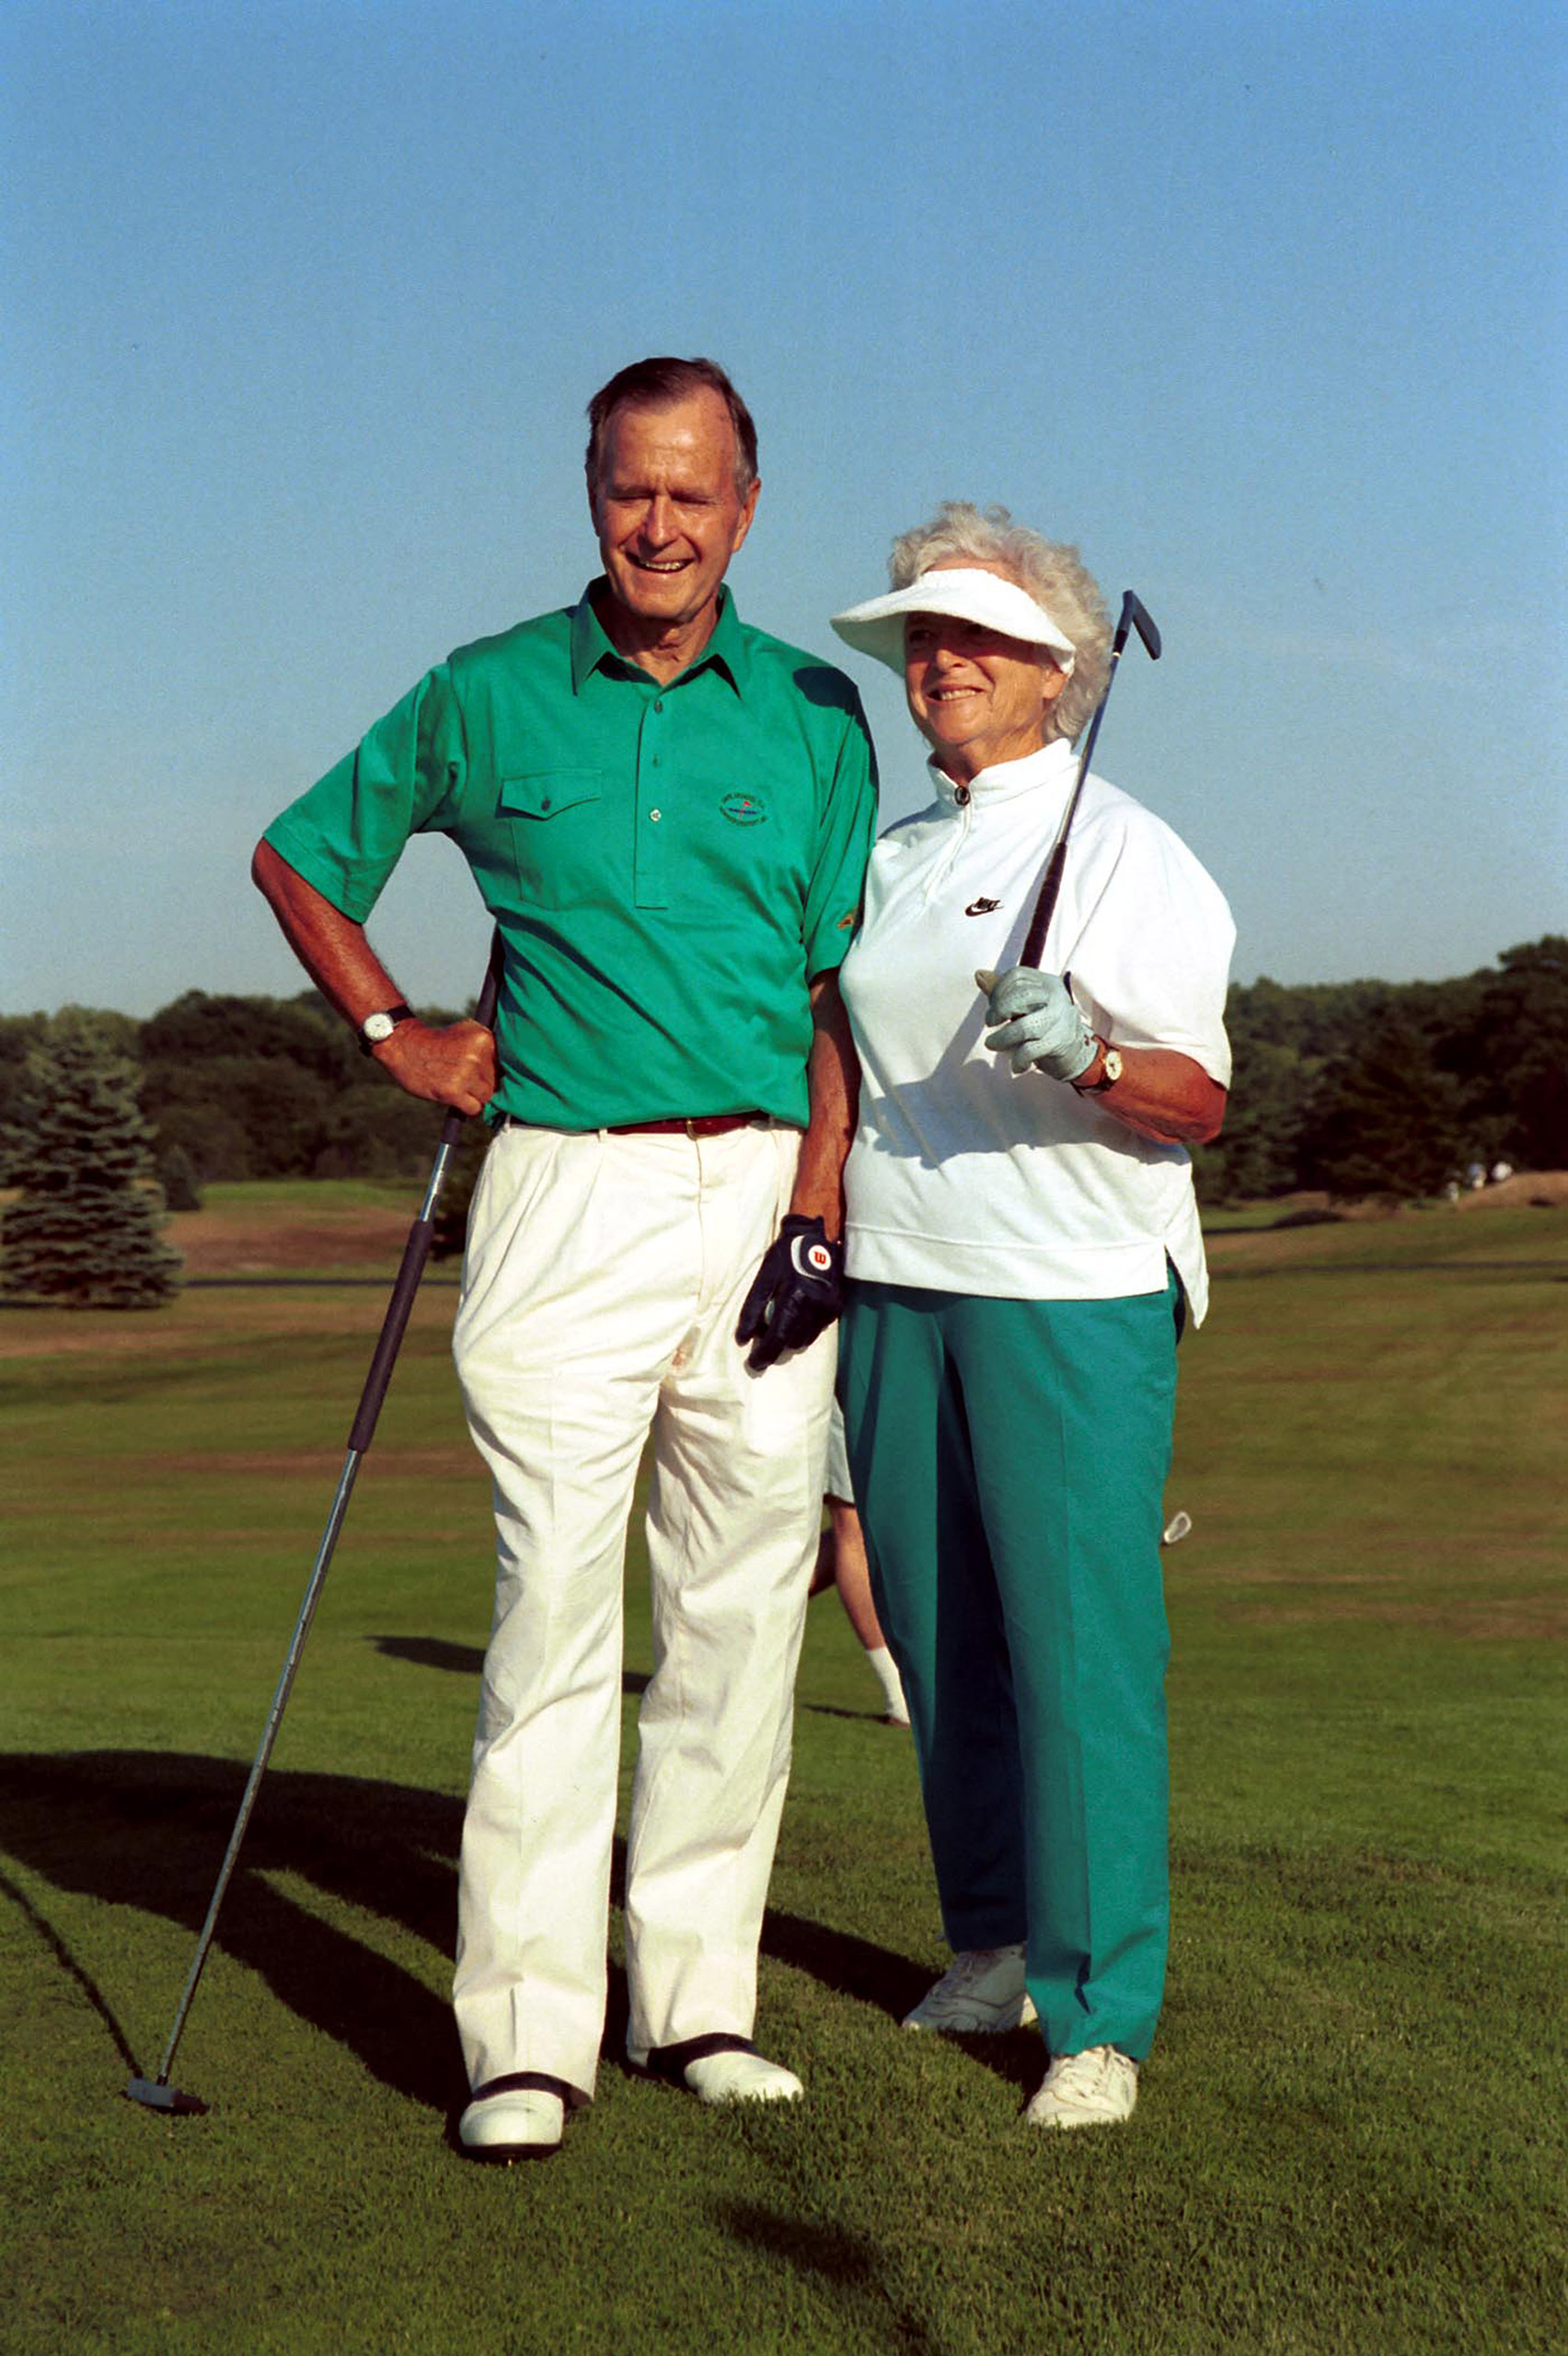 President and Mrs. Bush play golf on Aug. 7, 1991.